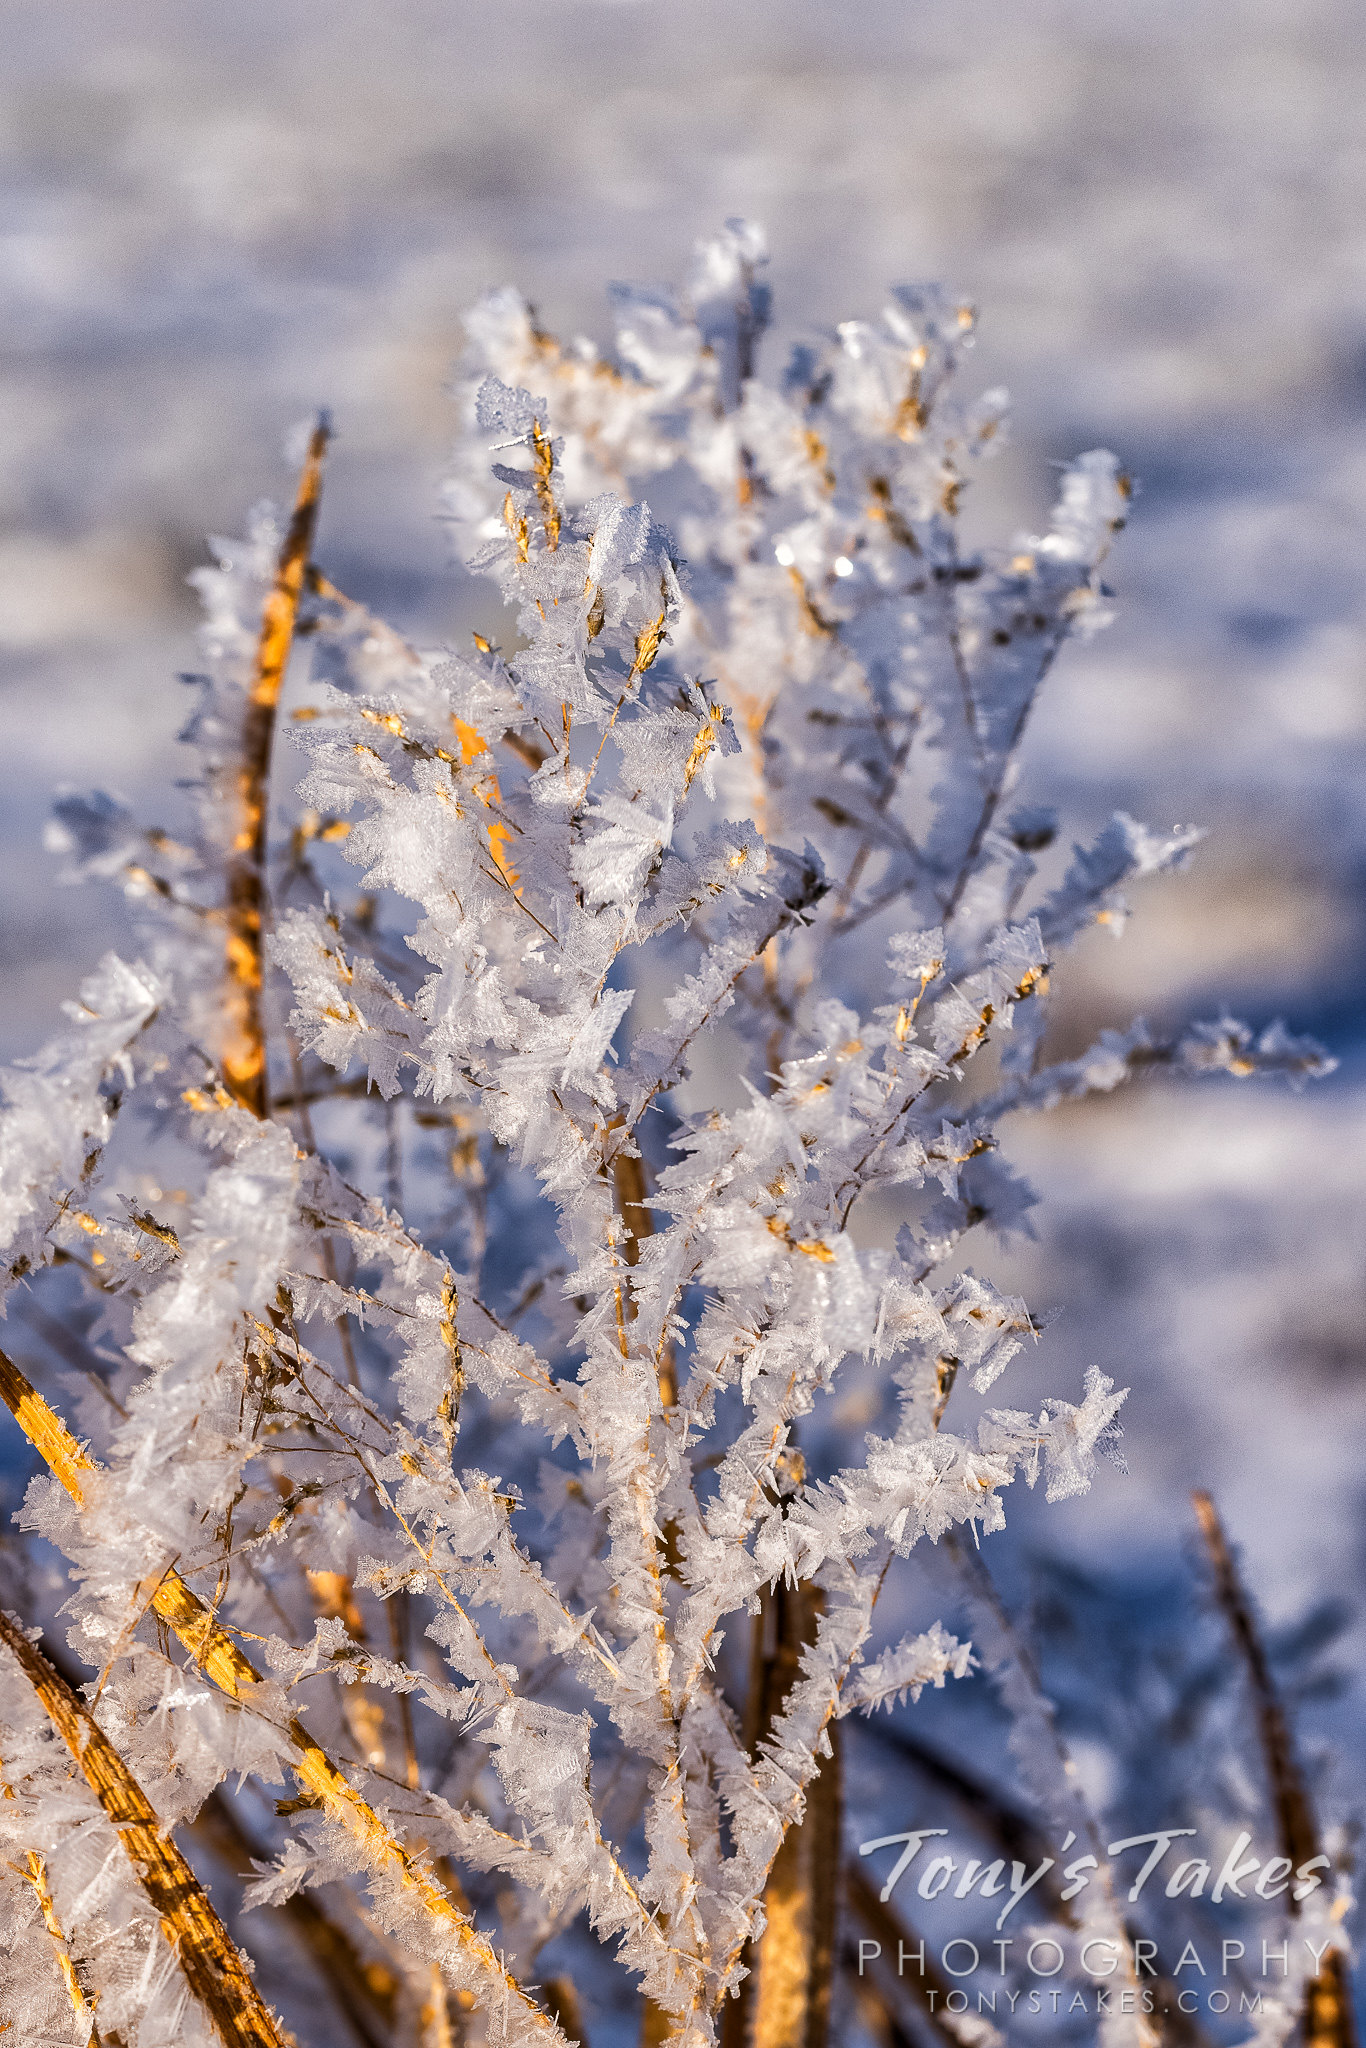 Hoar frost coats the grasses and plants on the Colorado plains. (© Tony's Takes)